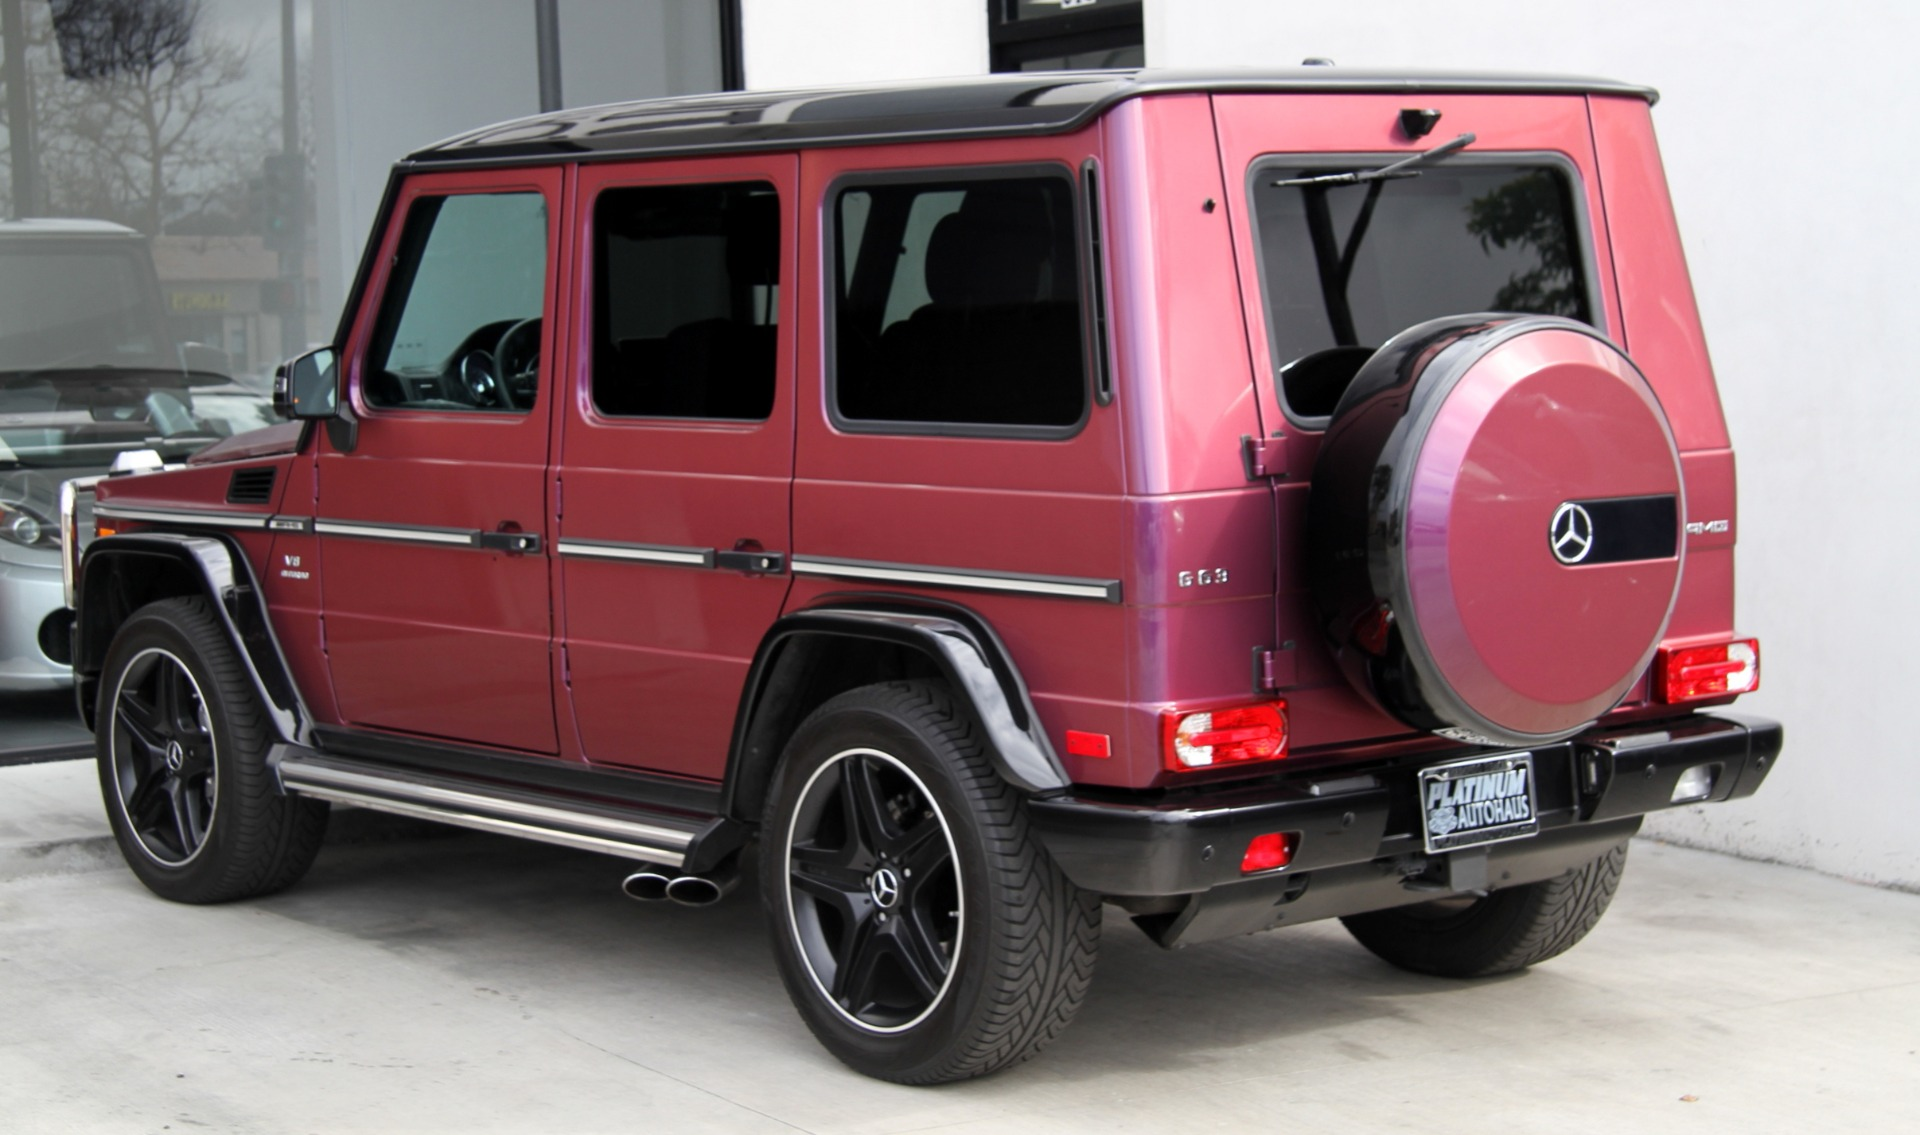 2015 mercedes benz g class g 63 amg amg studio package. Black Bedroom Furniture Sets. Home Design Ideas